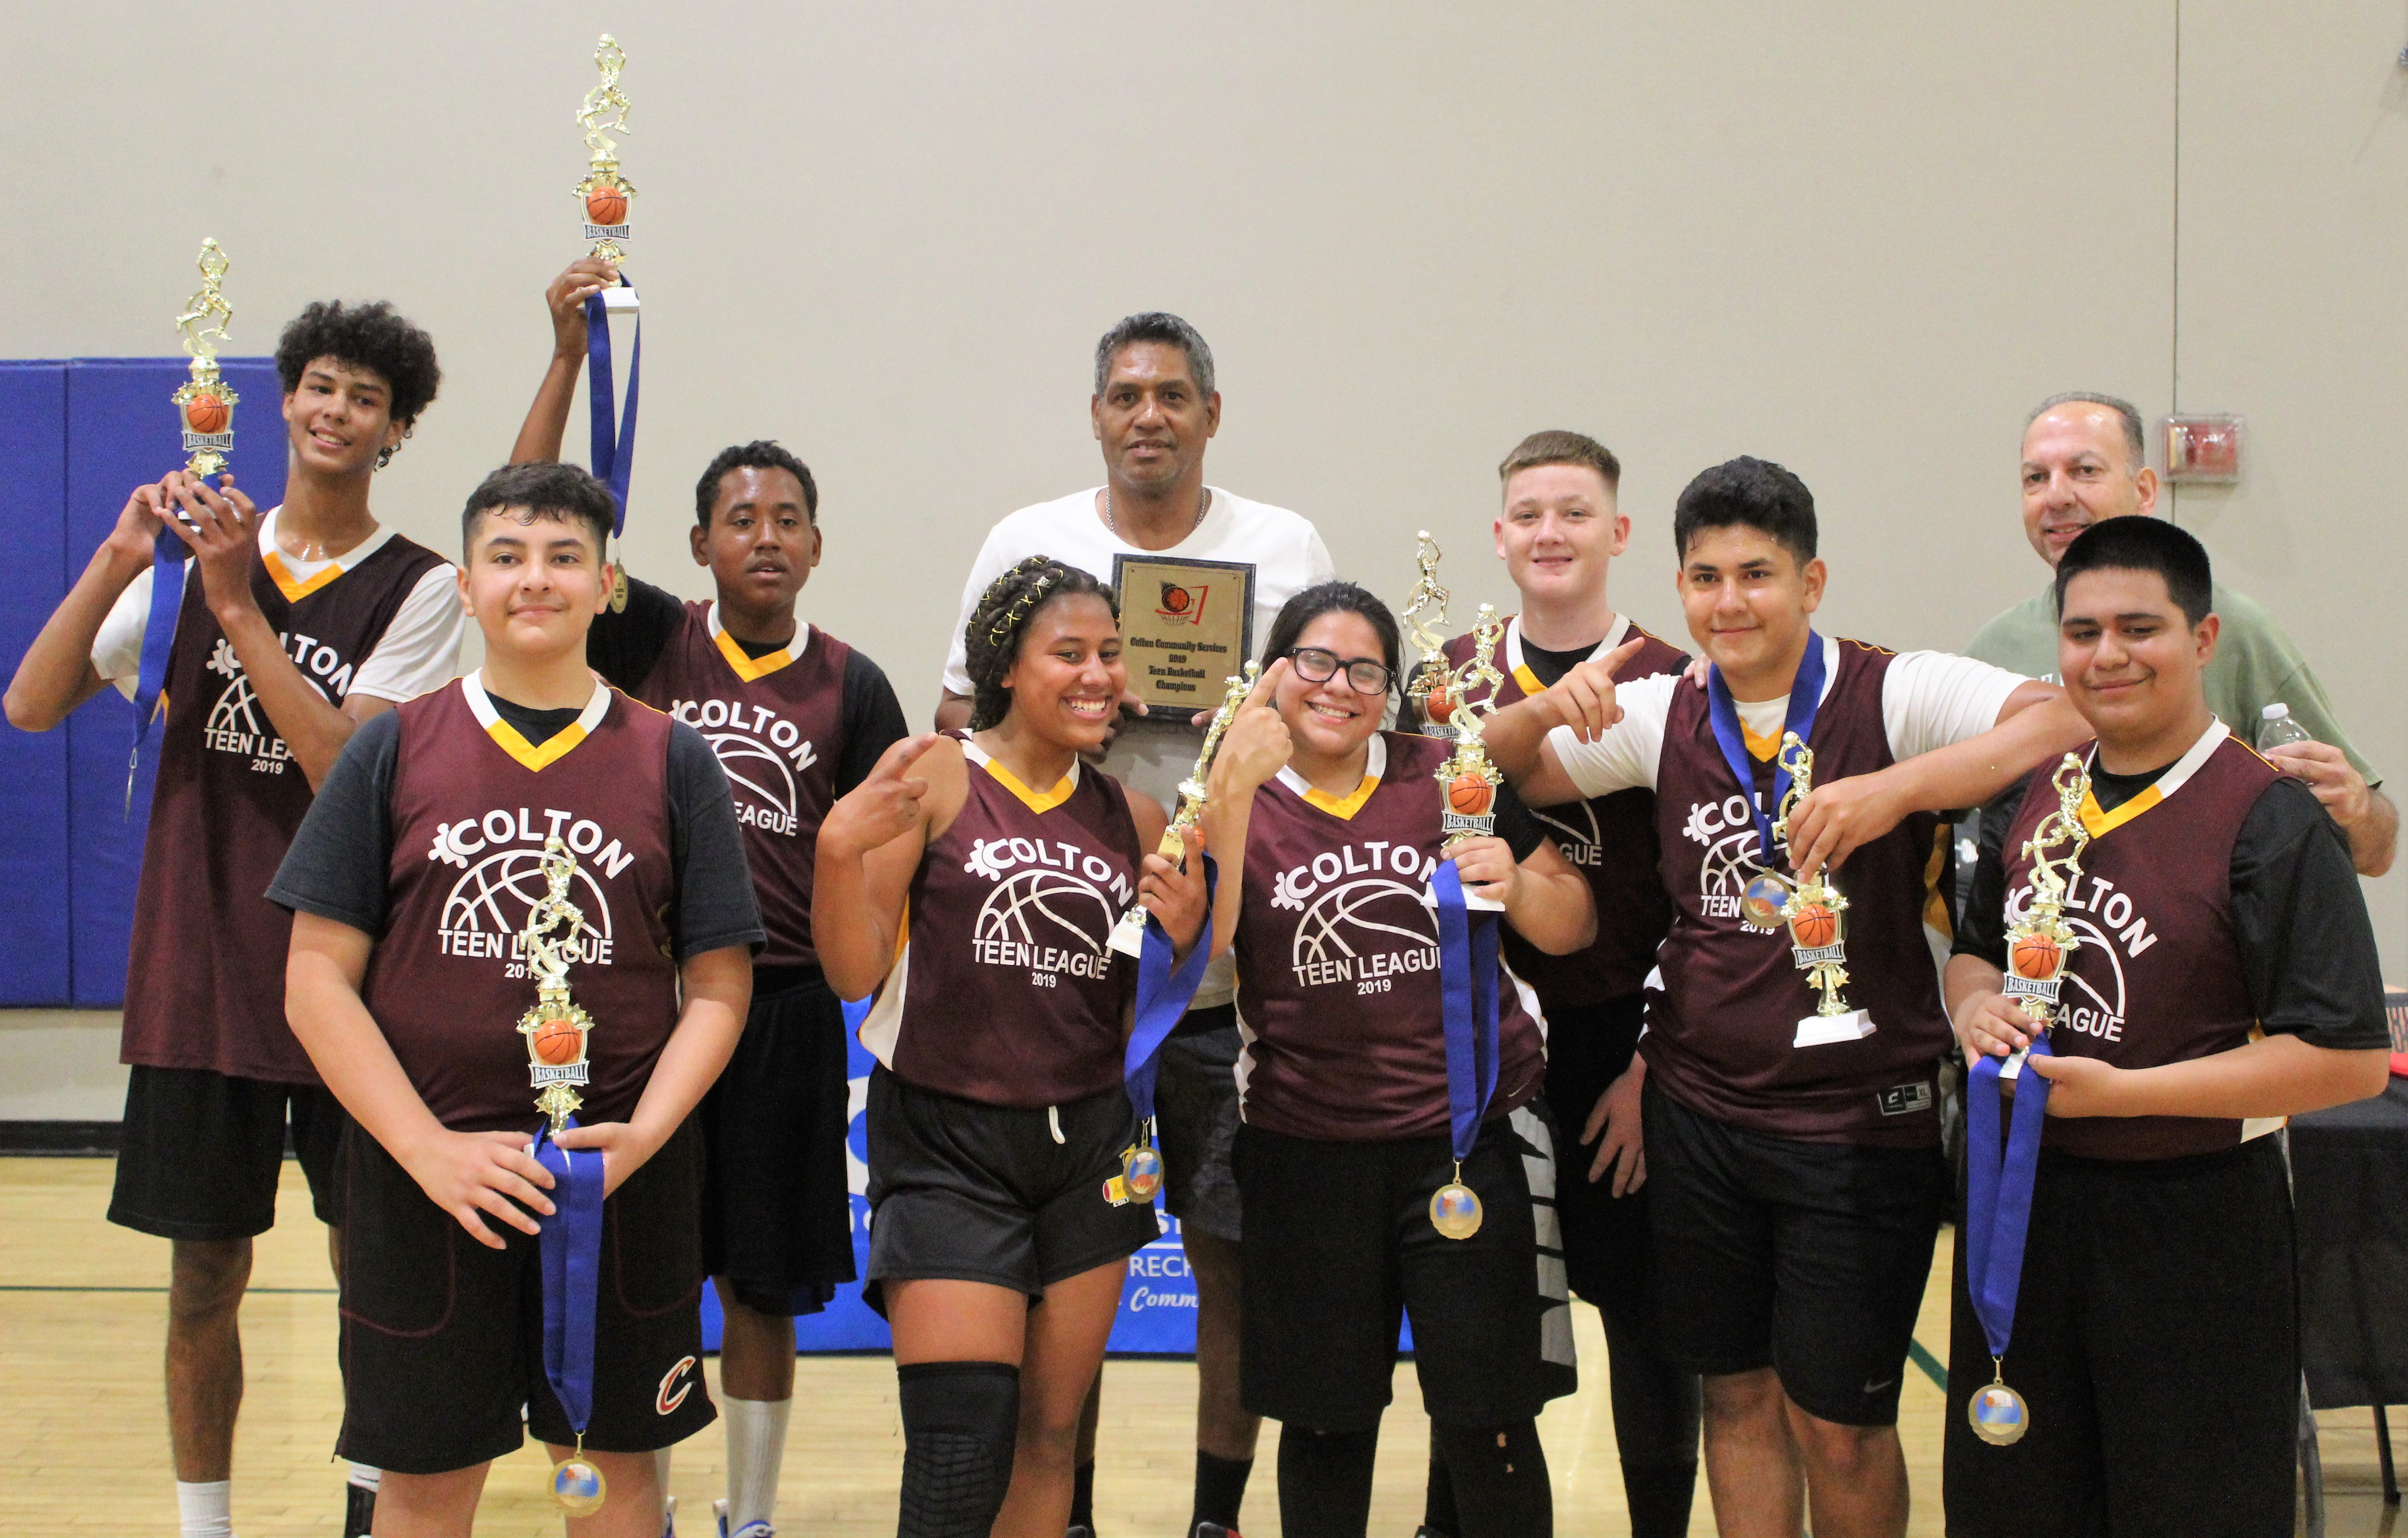 A teen coed basketball team showing off their medals